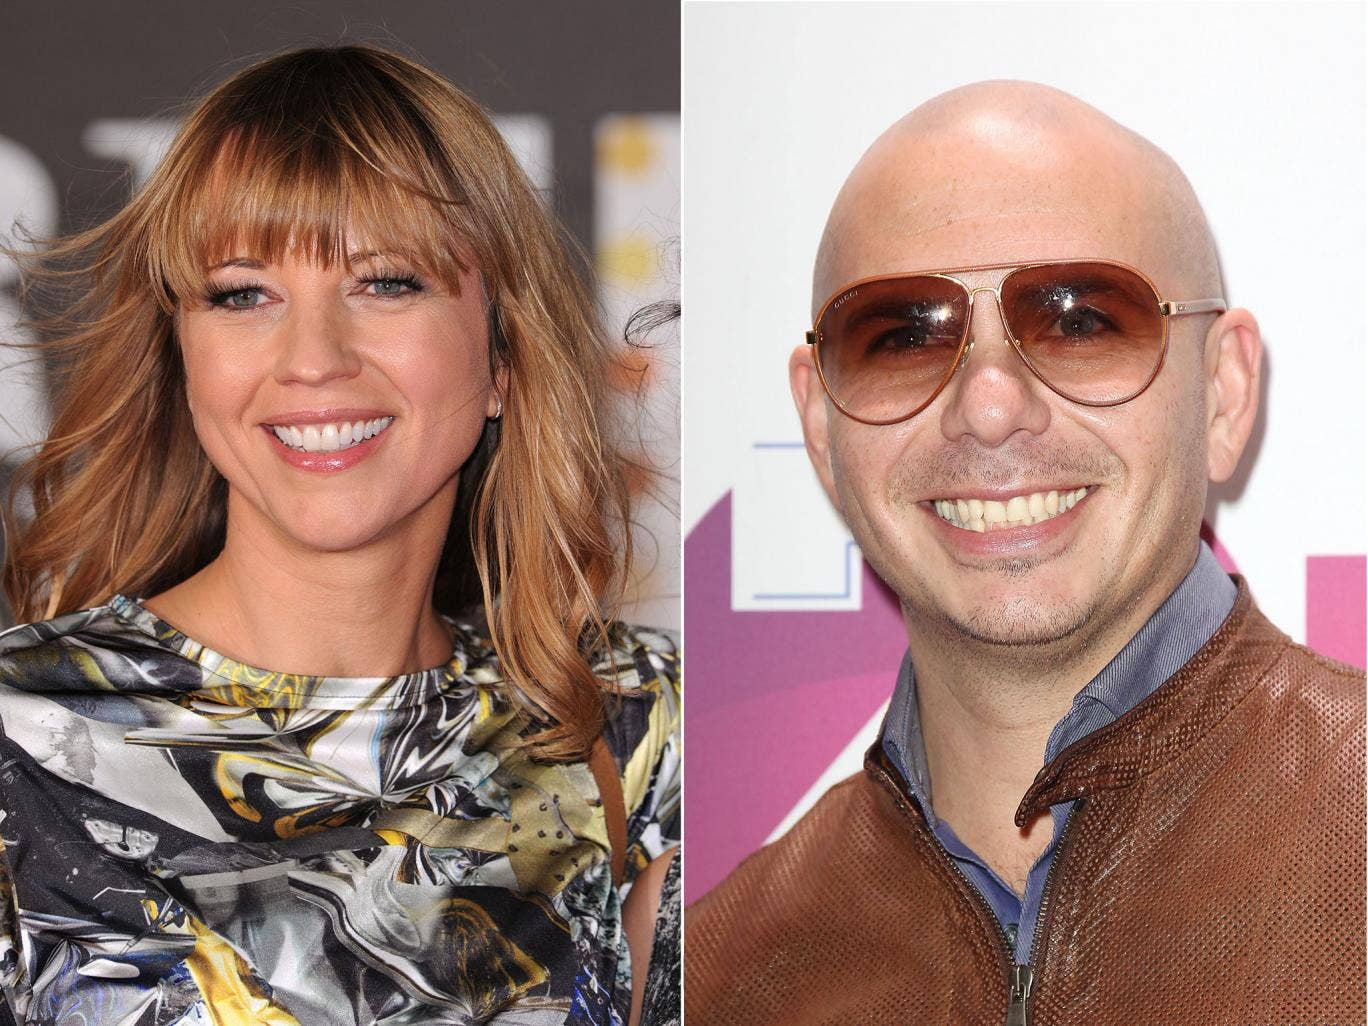 """DJ Sara Cox, left, said of Pitbull: """"(He) makes my soul weep with the way he sings about women. I couldn't bear playing that"""""""